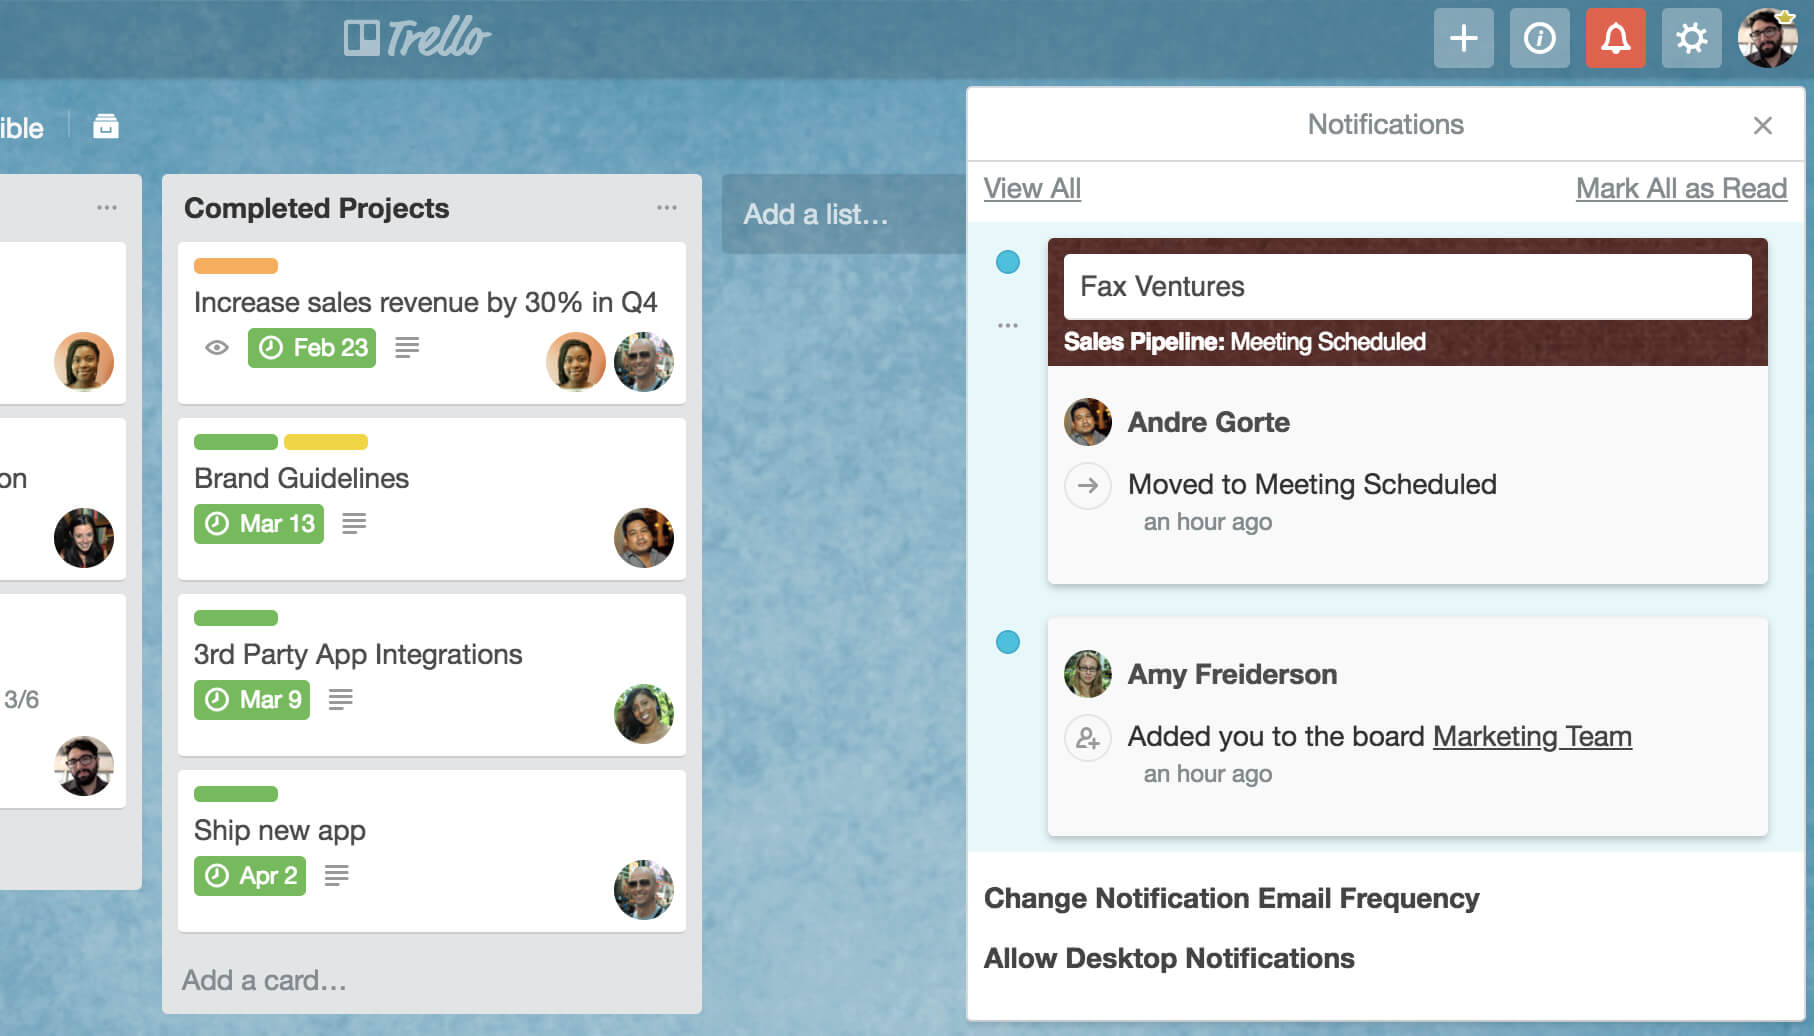 Filter Trello notifications by unread